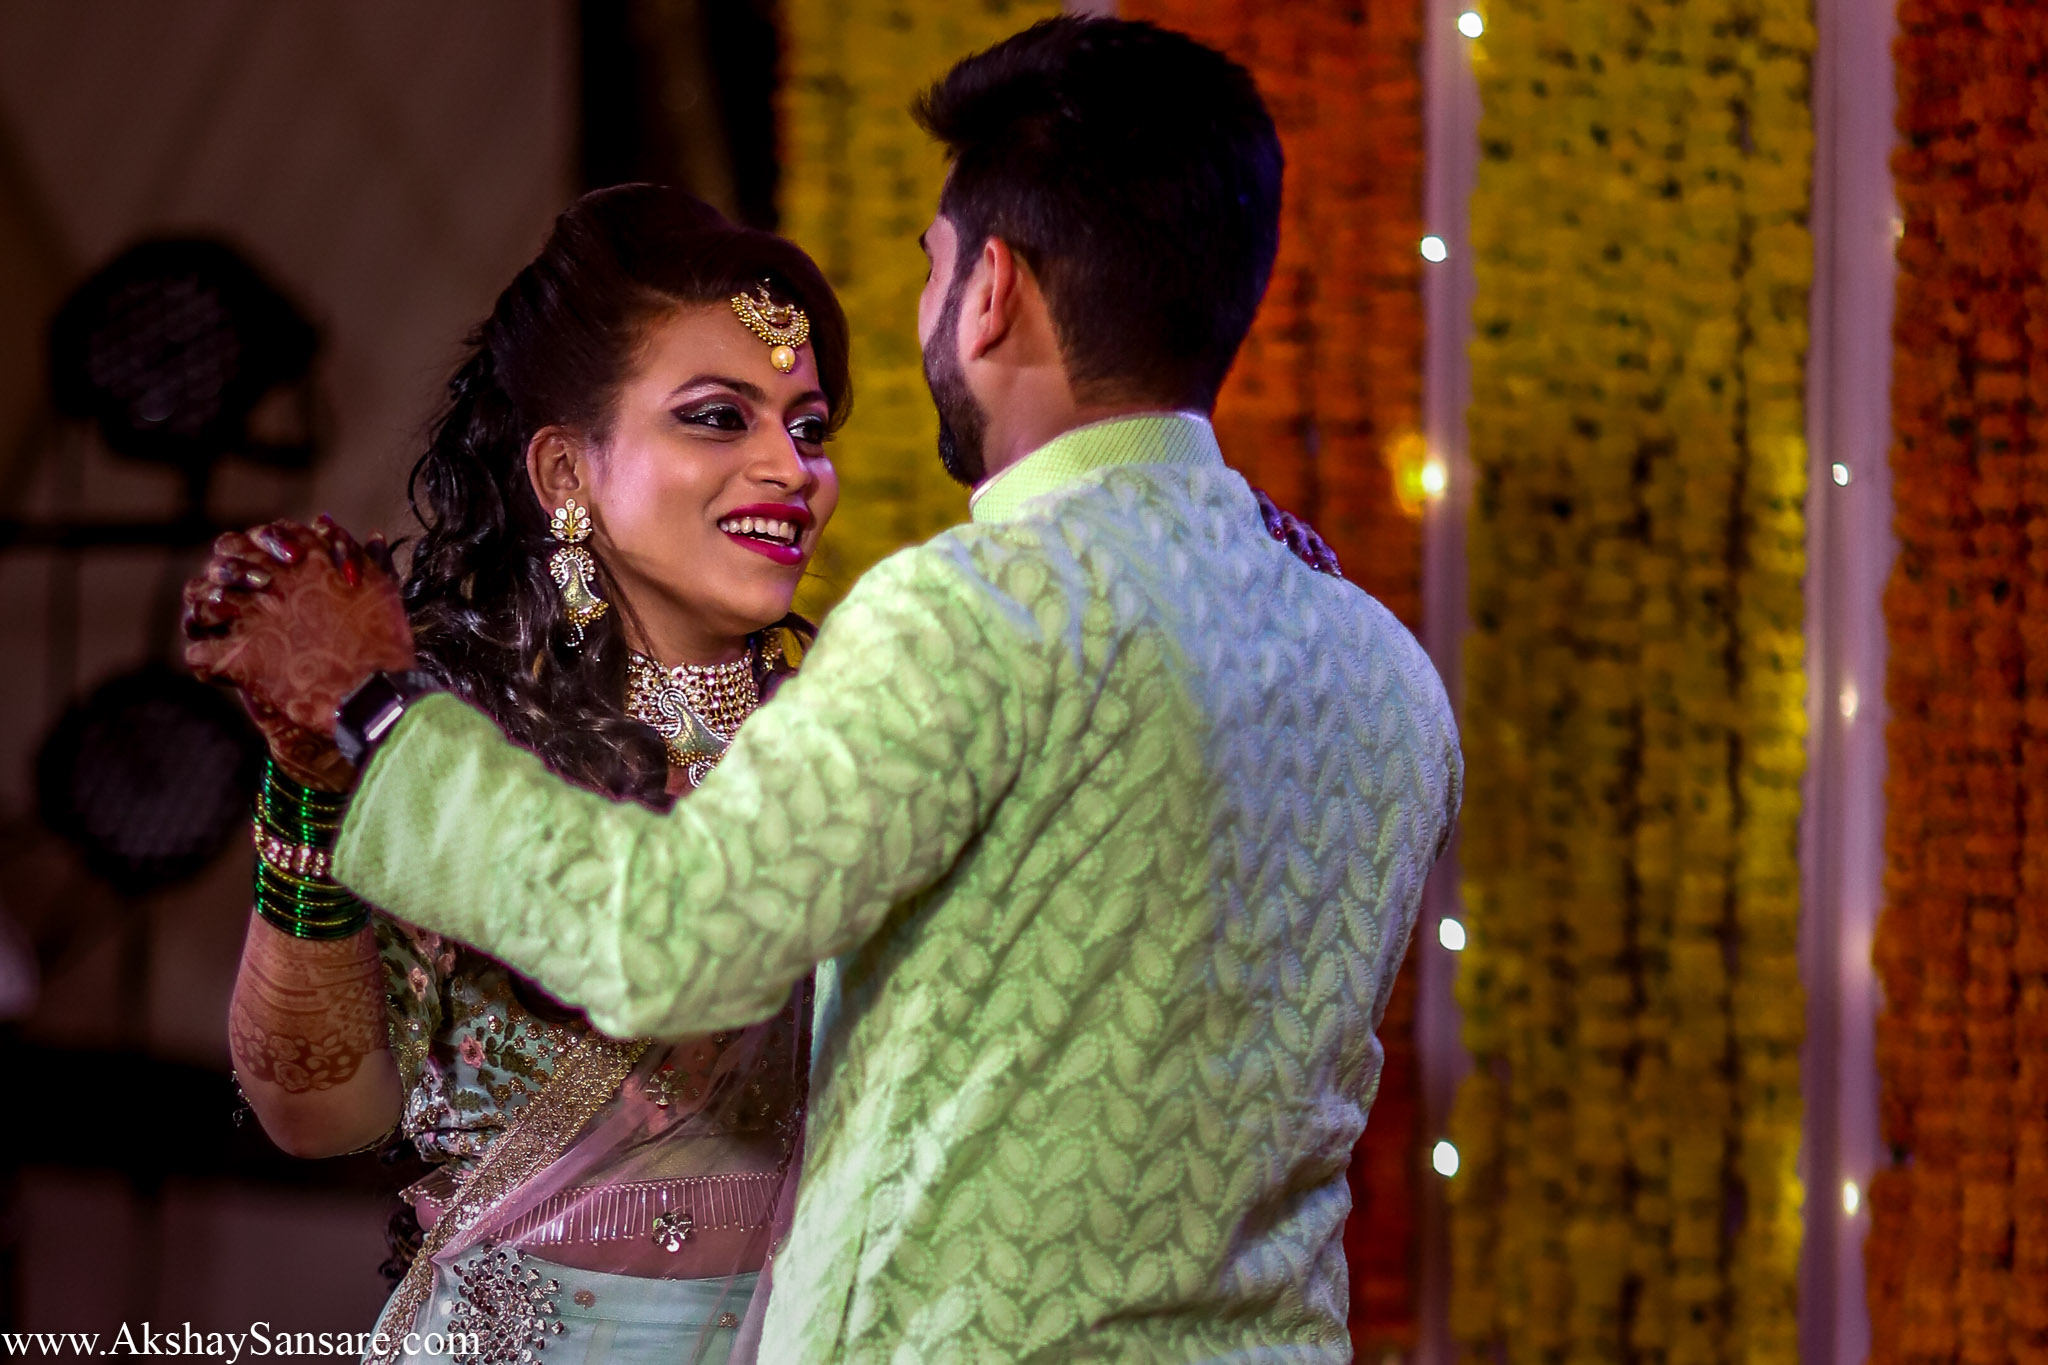 Ajay & Devika Akshay Sansare Photography Best Candid wedding photographer in mumbai india36.jpg